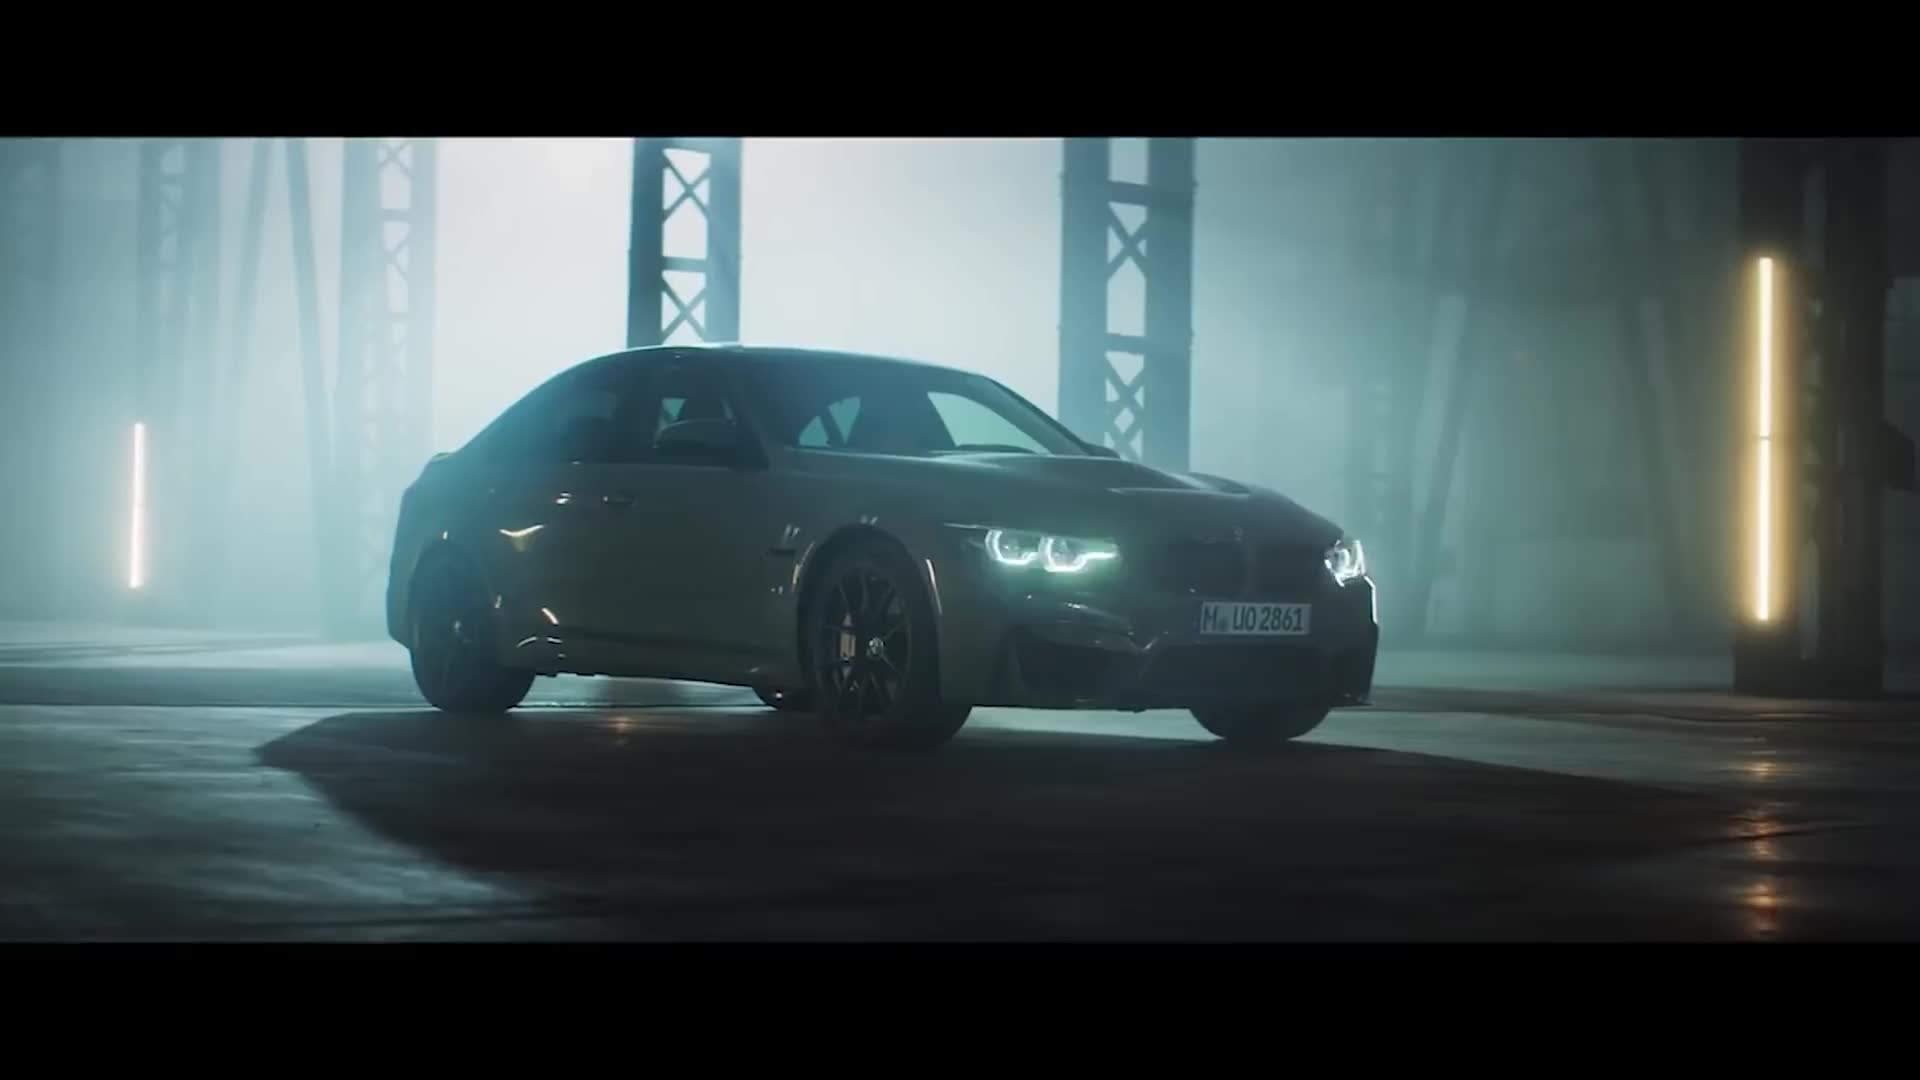 http://newcp.zhibeifw.com/upload/cs_fswk/20160922082211_e63u.png_new bmw m3 cs 2018